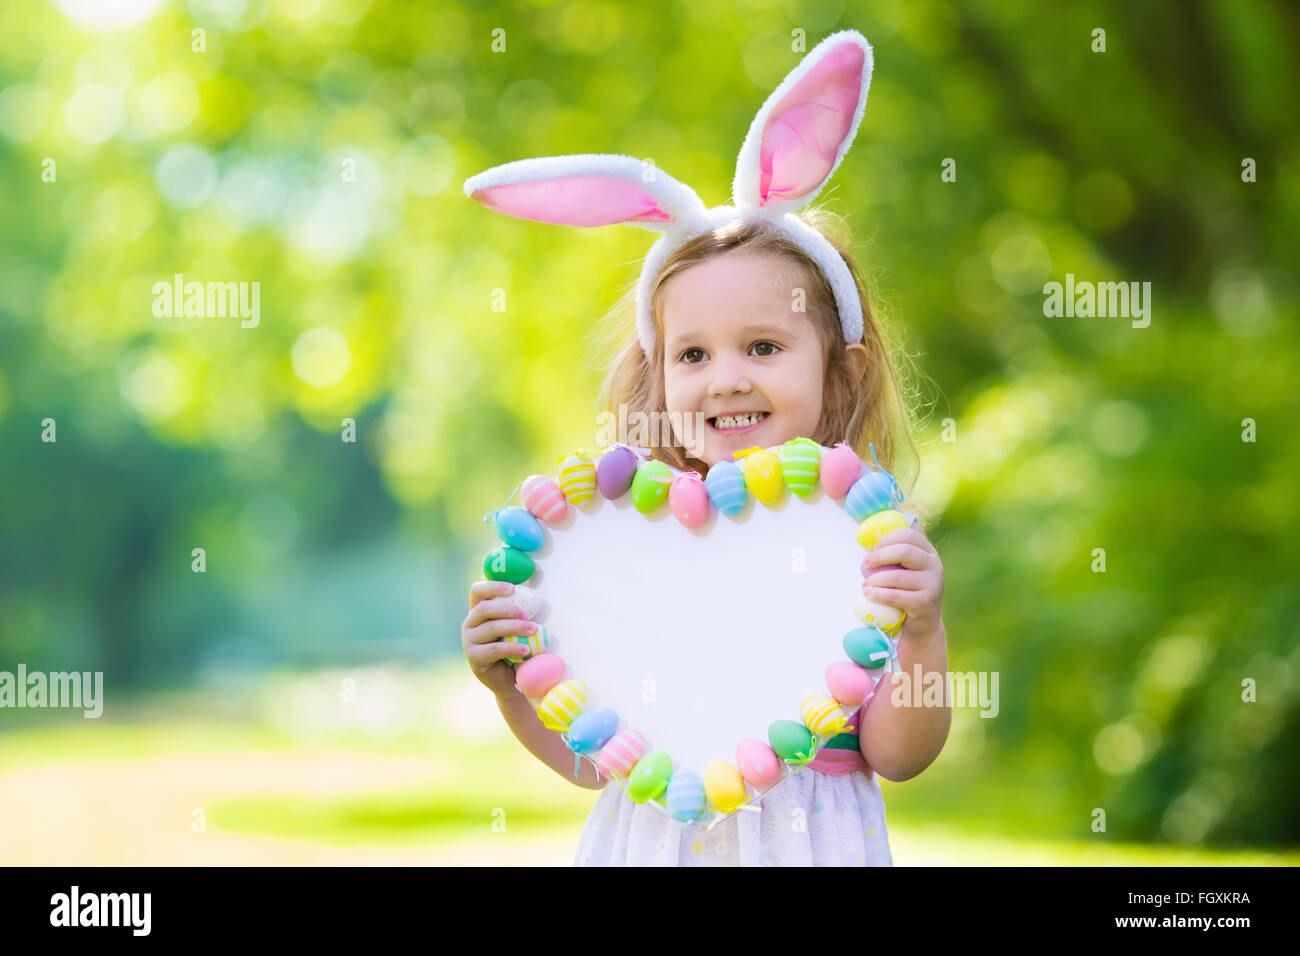 Little Girl Having Fun On Easter Egg Hunt Kids In Bunny Ears And